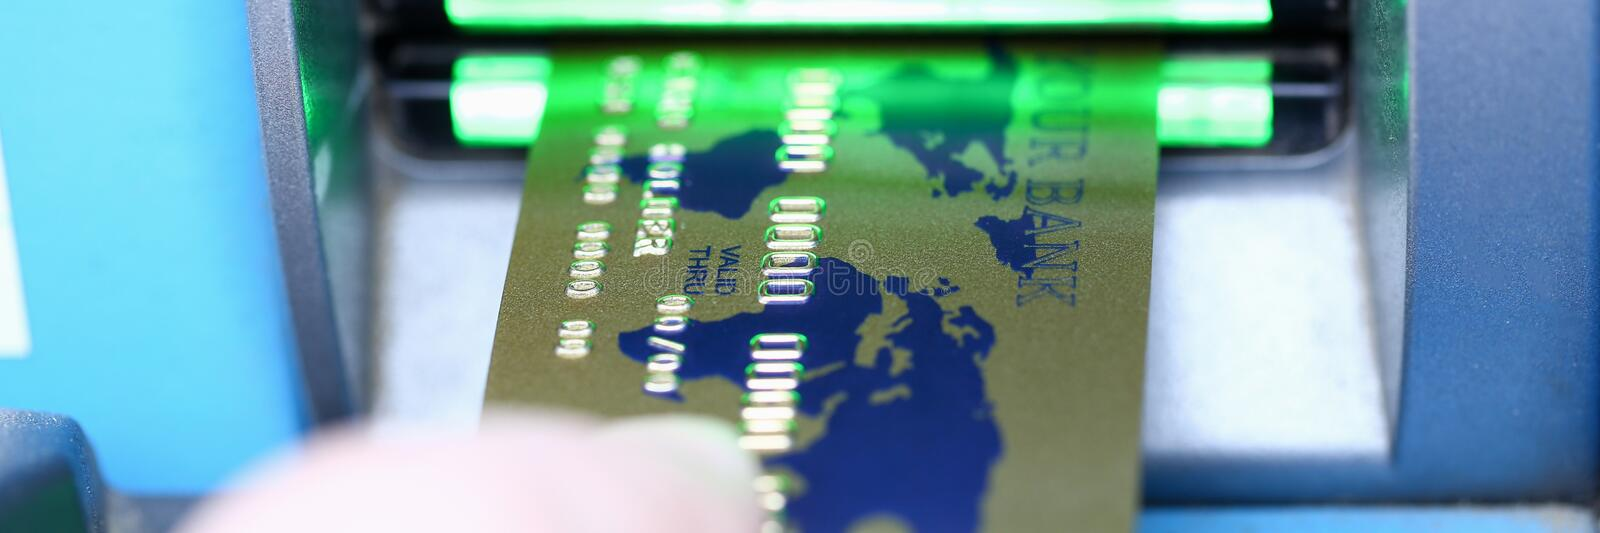 Male hand hold bank plastic card aganist atm royalty free stock photography